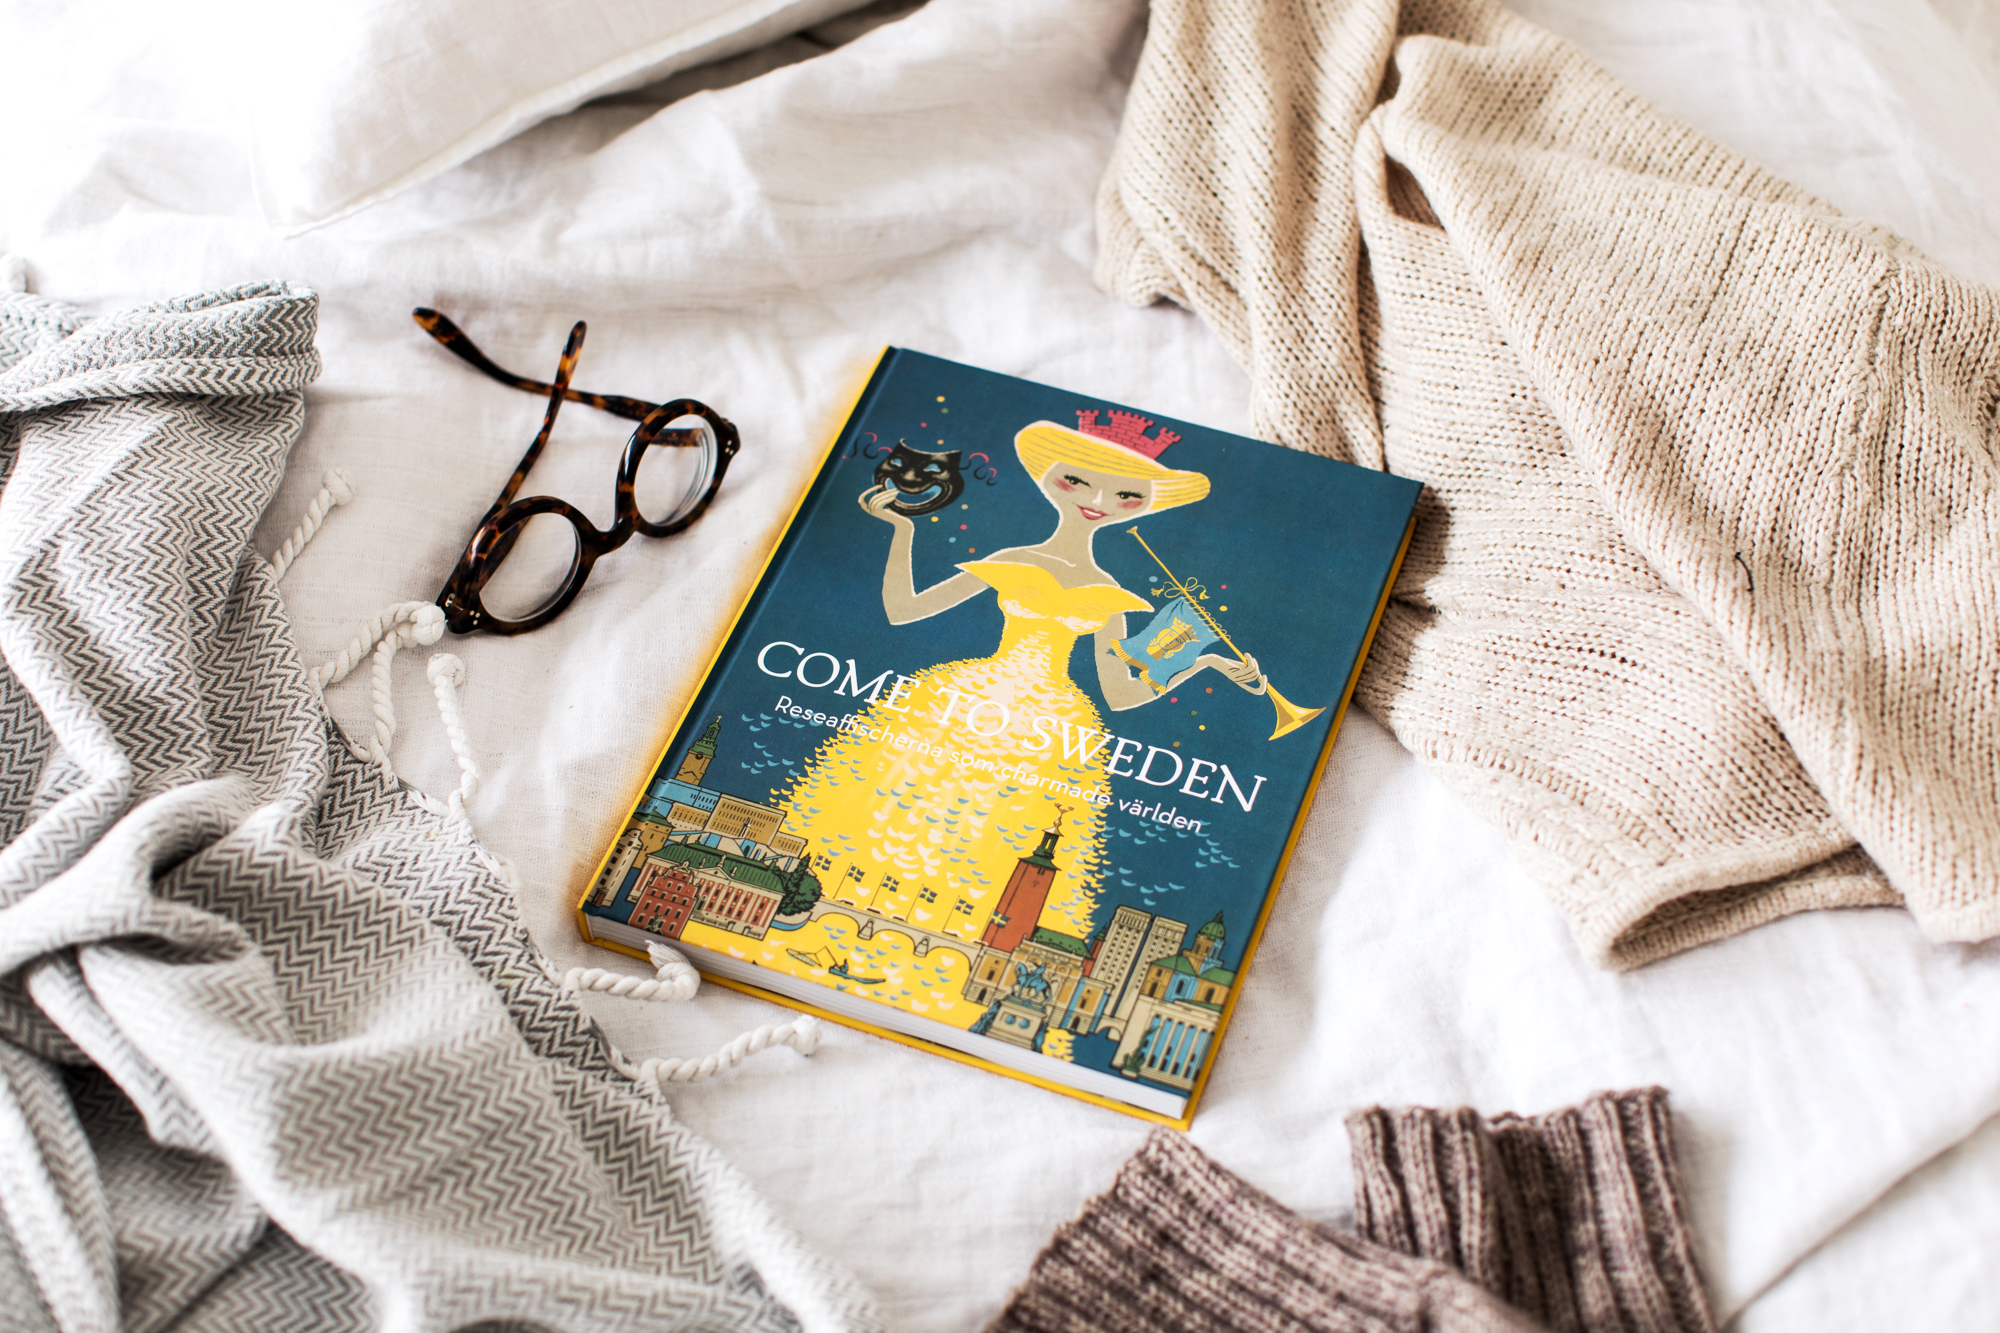 The Come to Sweden book